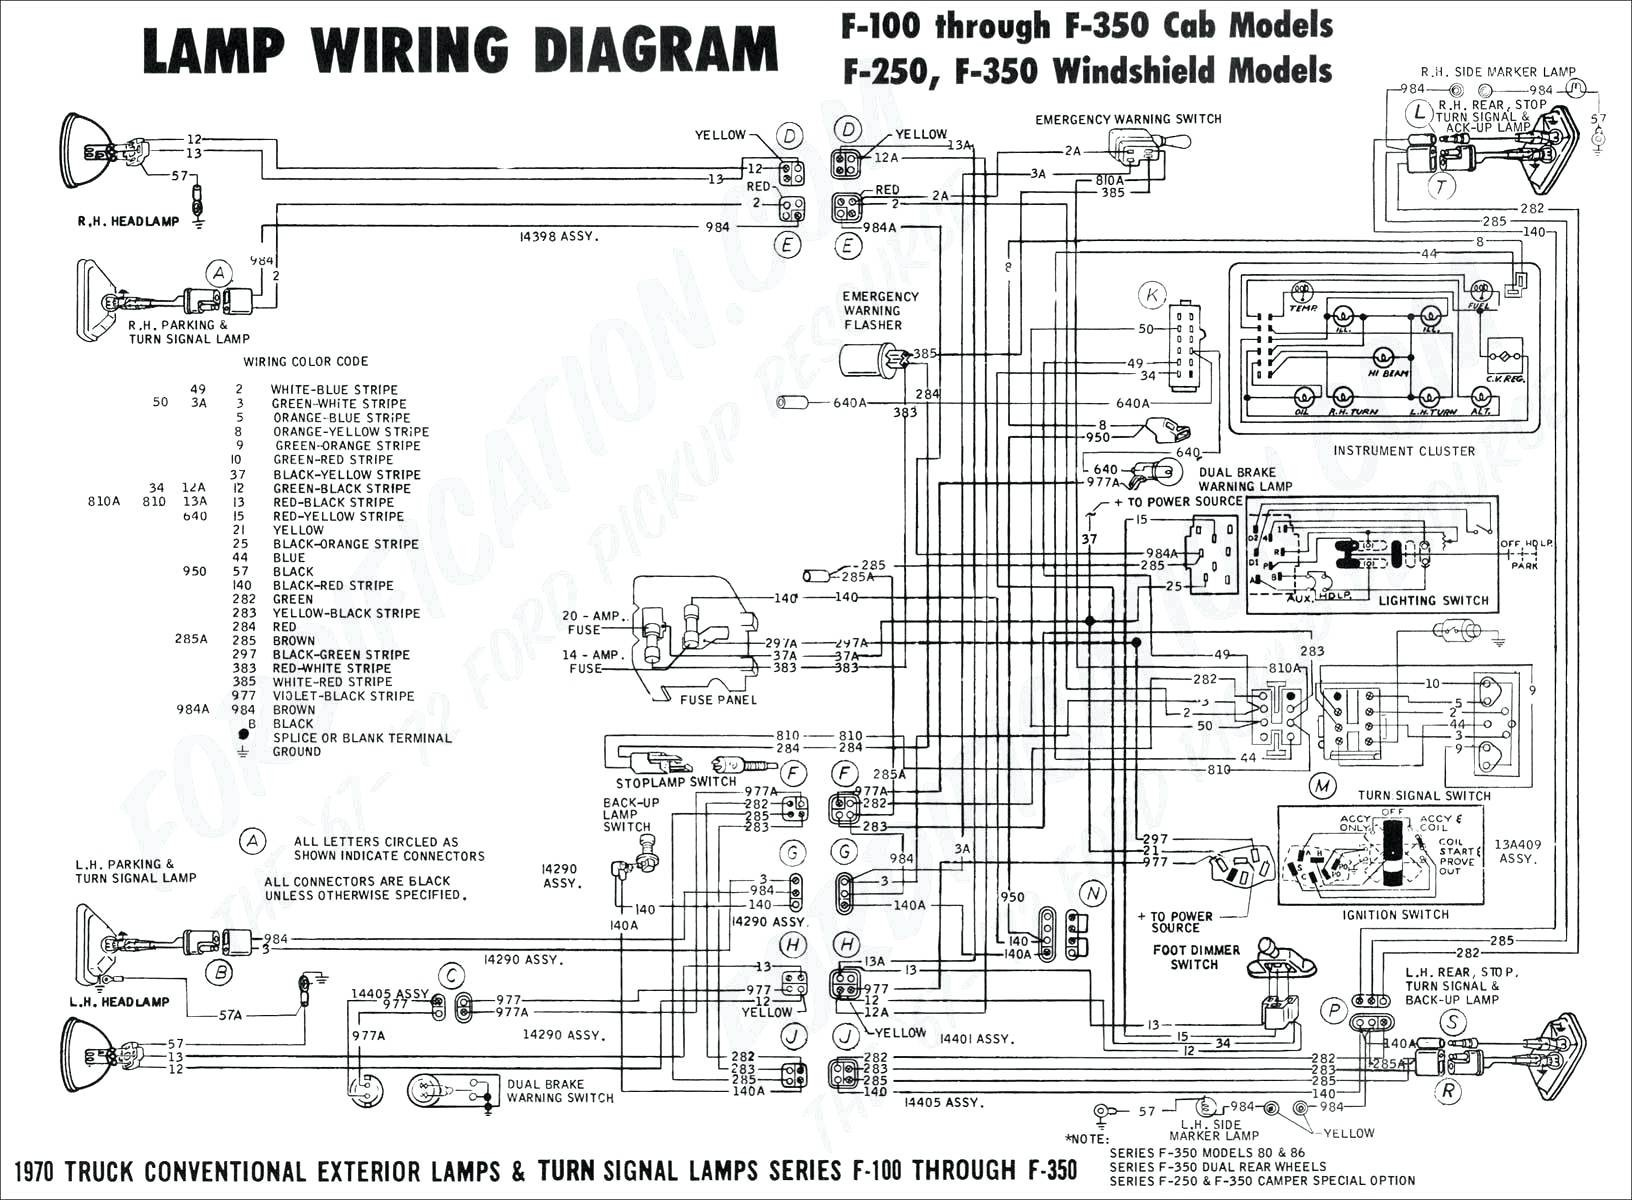 2003 toyota Camry Parts Diagram Wiring Diagram 2008 Tahoe Experts Wiring Diagram • Of 2003 toyota Camry Parts Diagram